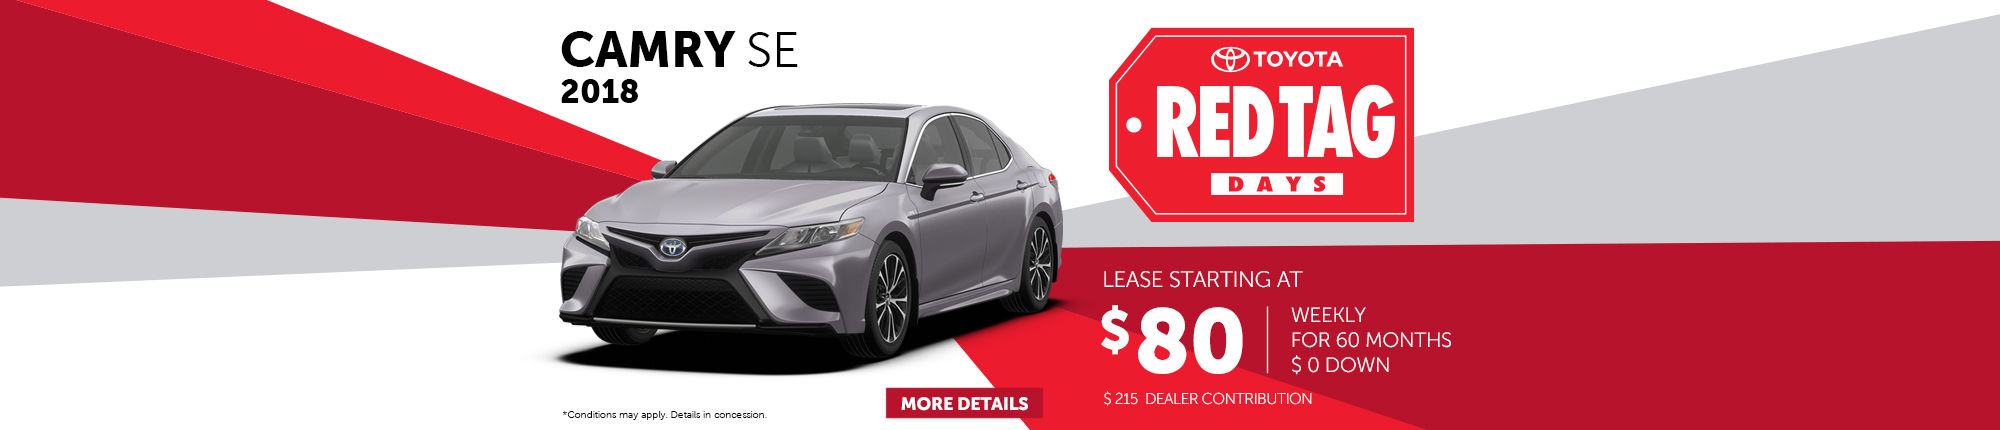 Red Tag Days - Camry